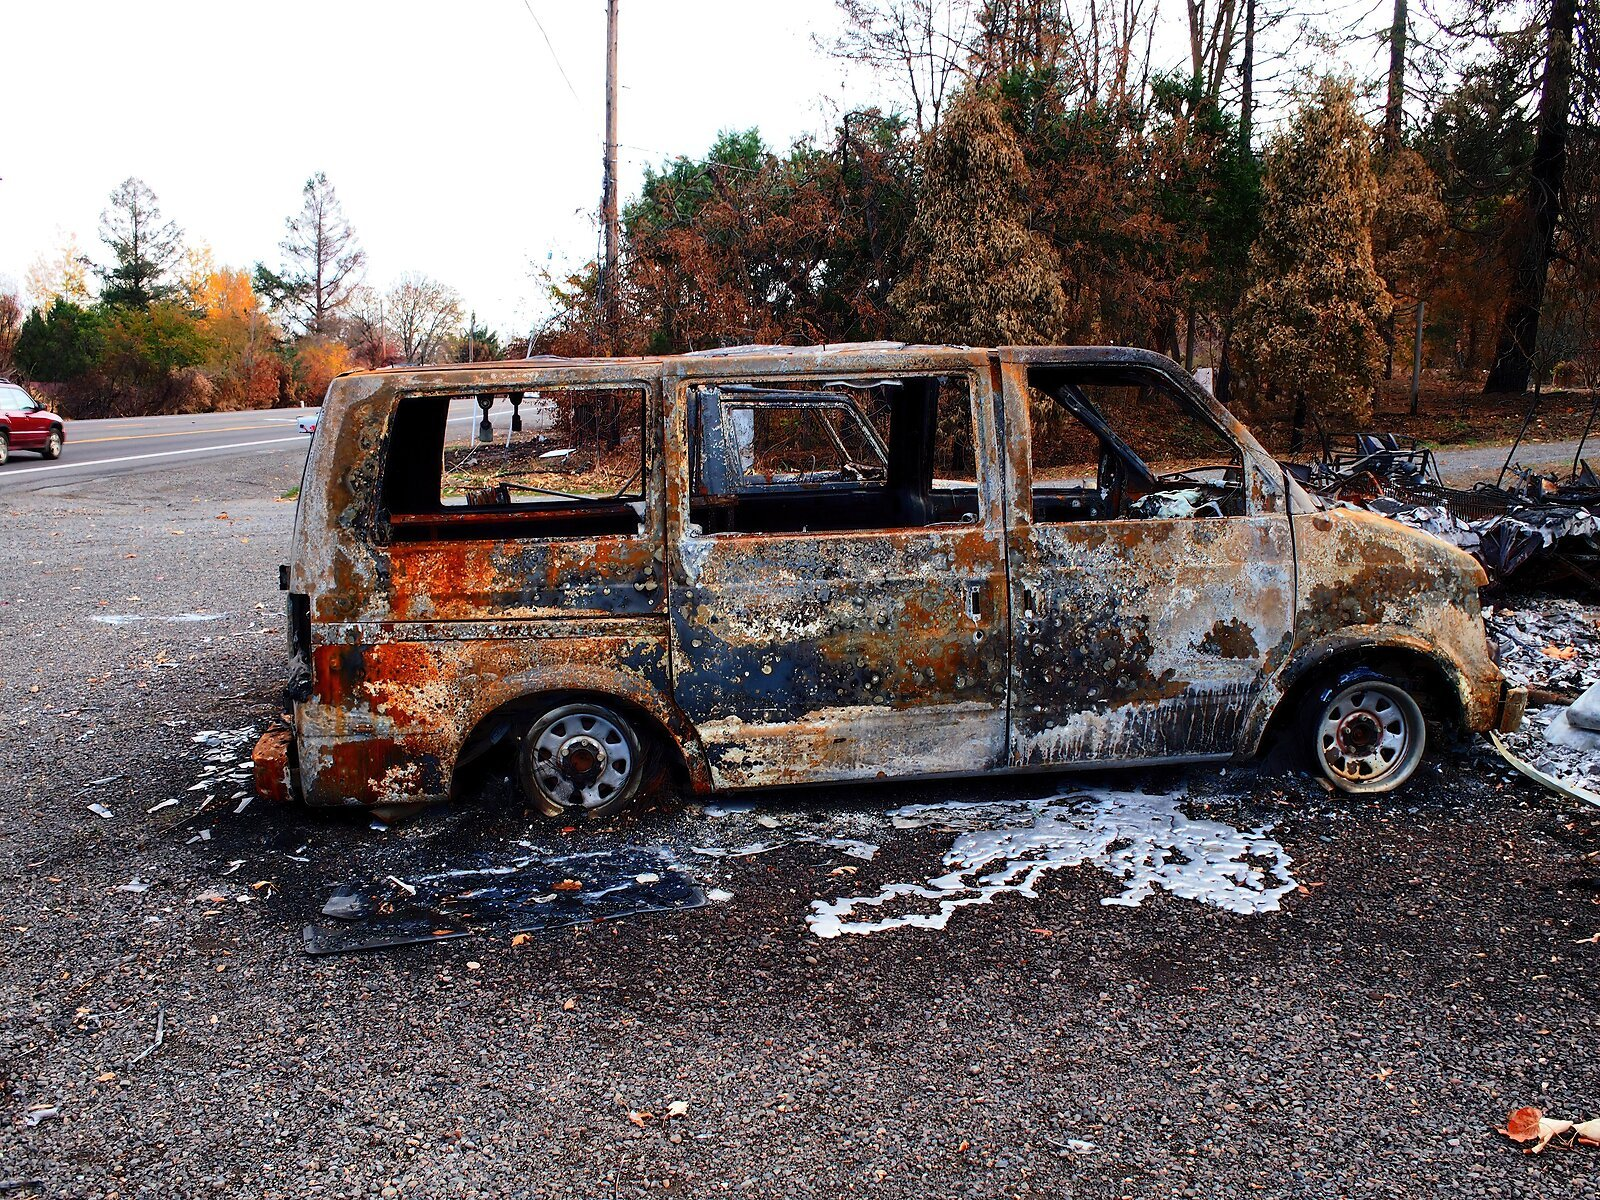 EP3_Nov10_Burned_vehicles#3.jpg